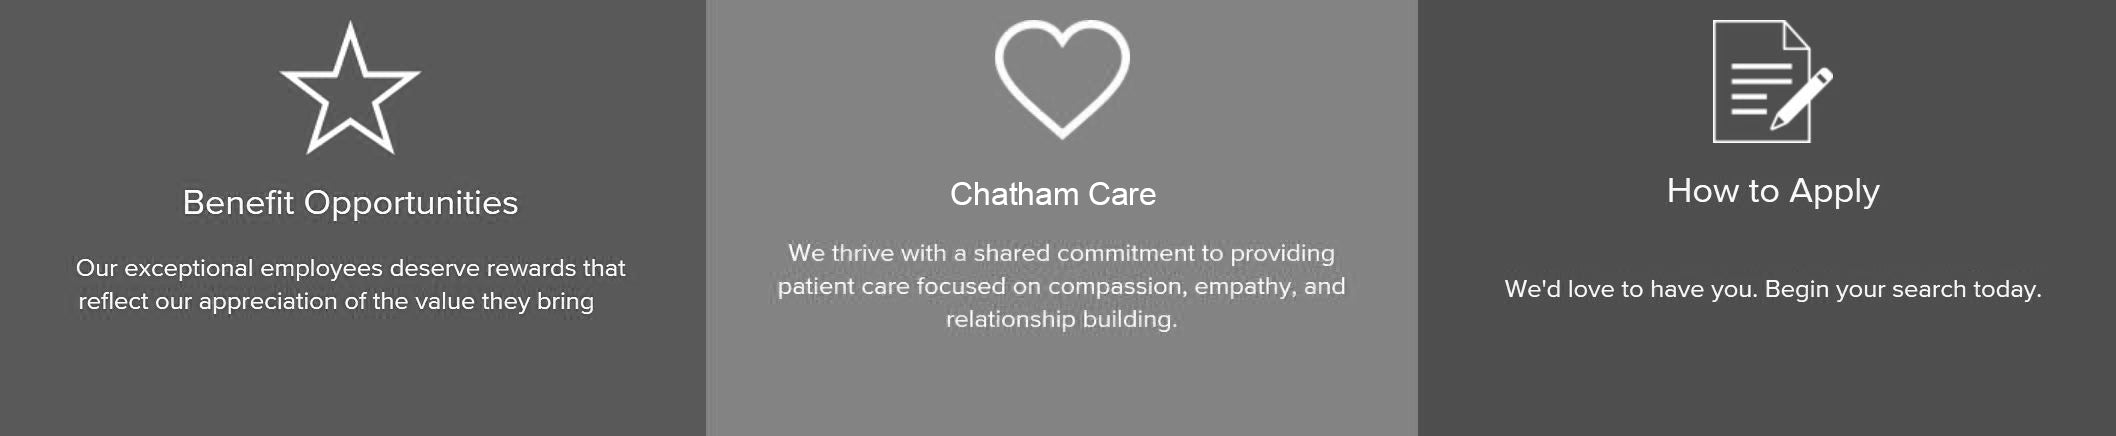 Chatham Care, PC - Career Page Banner